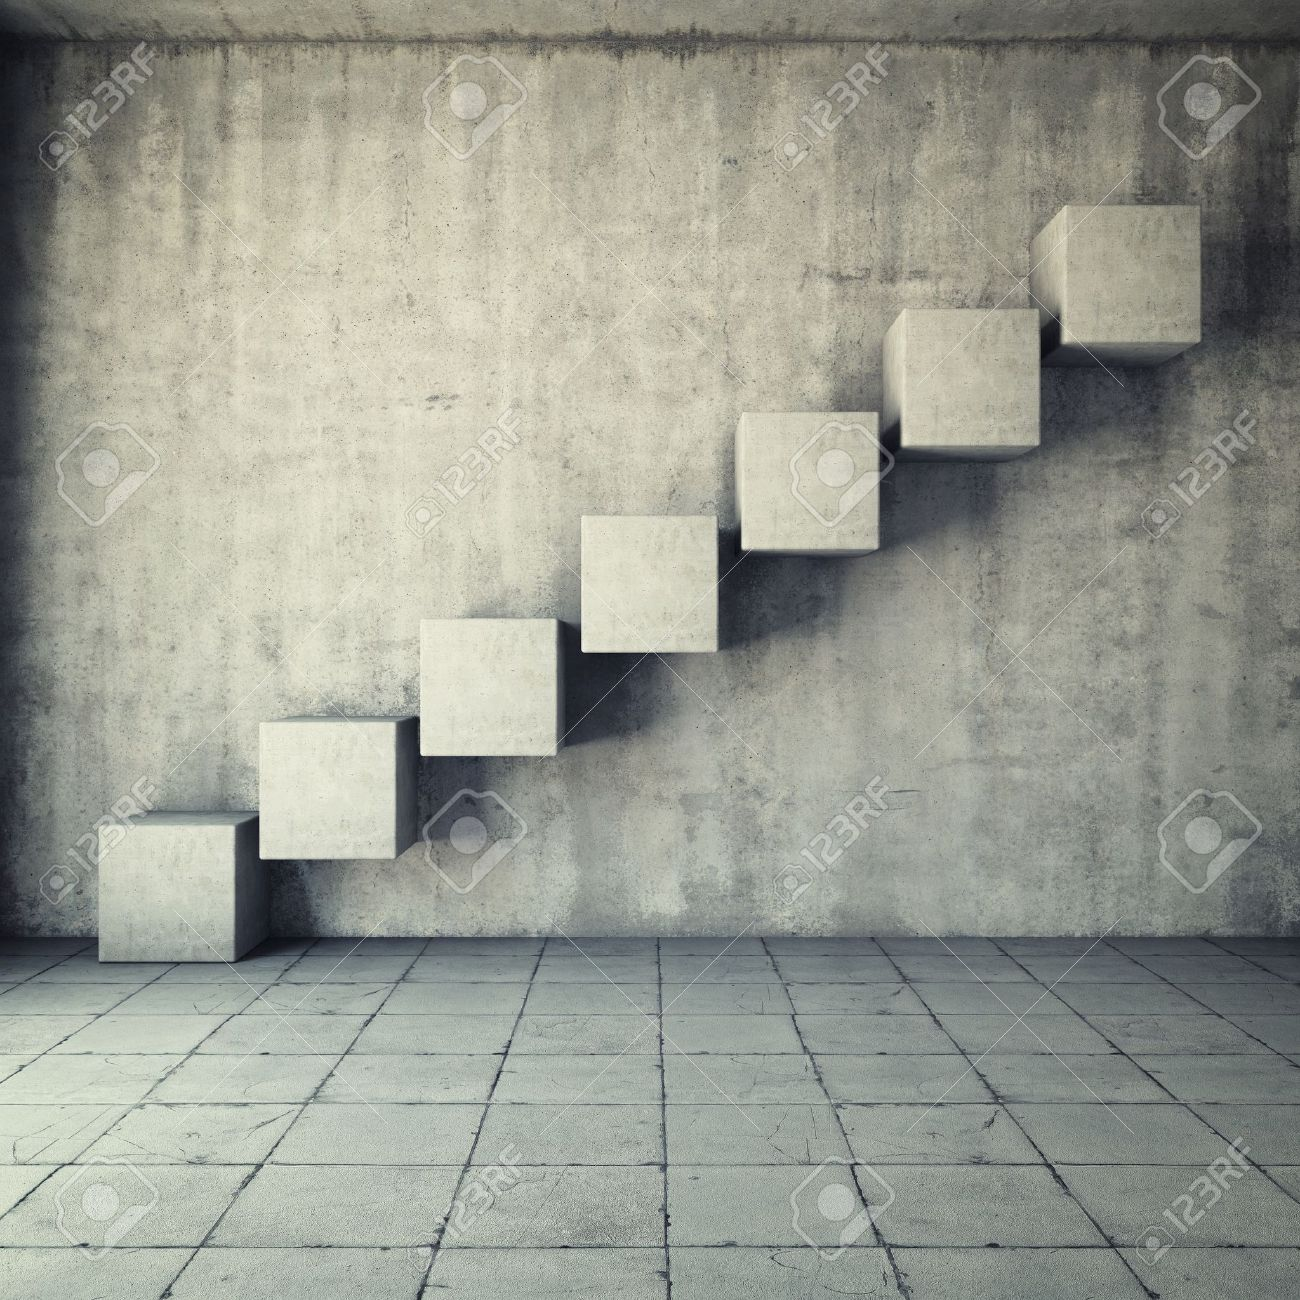 concrete stairs interior stock photos & pictures. royalty free